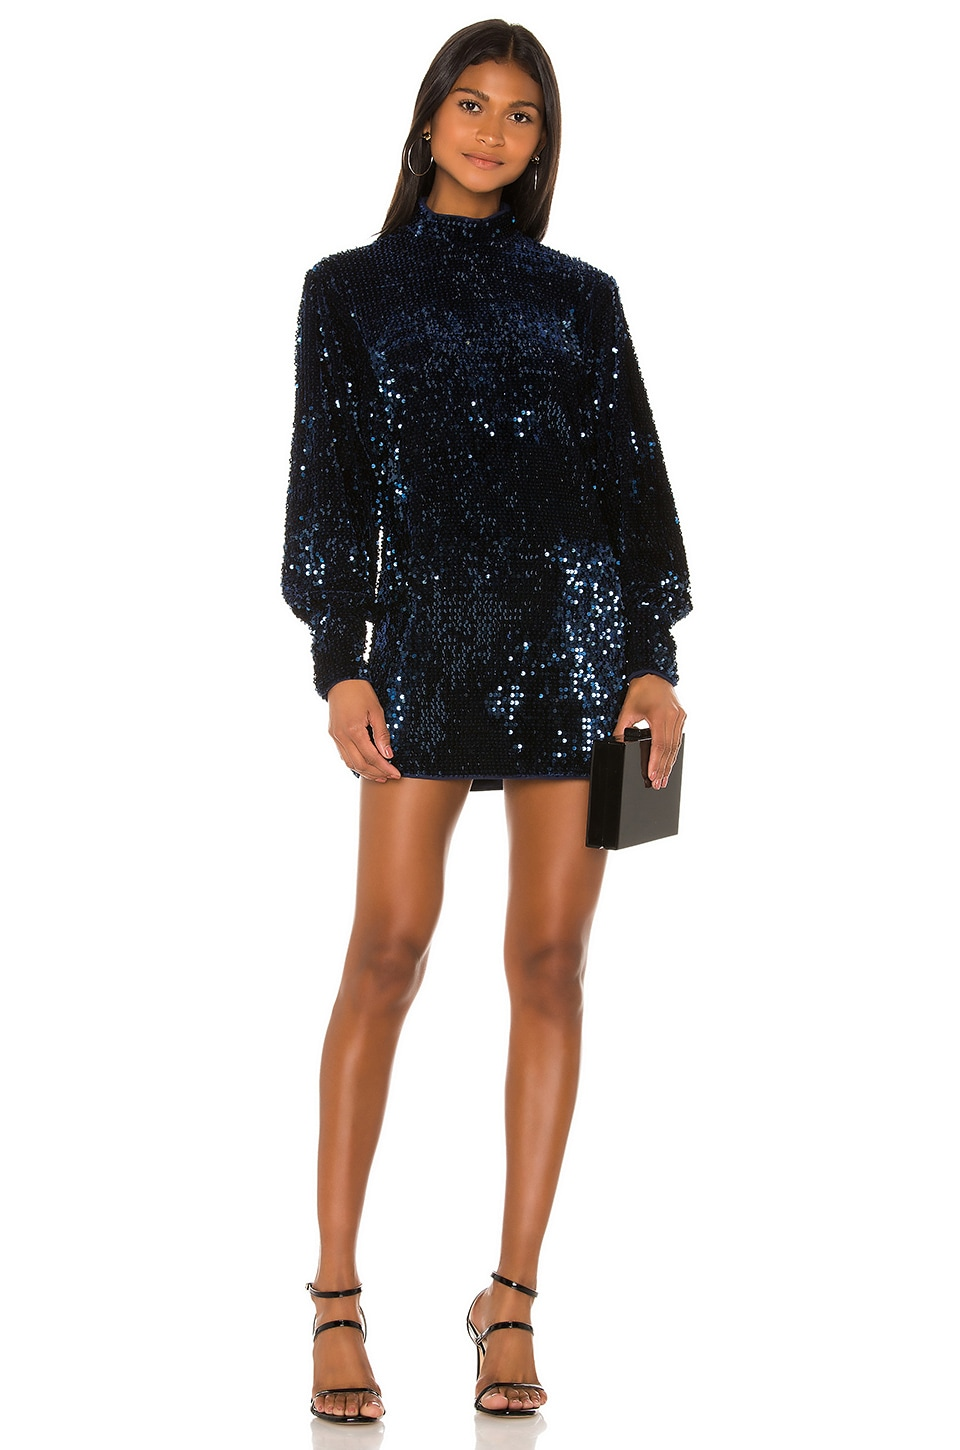 Camila Coelho Jezabel Mini Dress in Midnight Blue